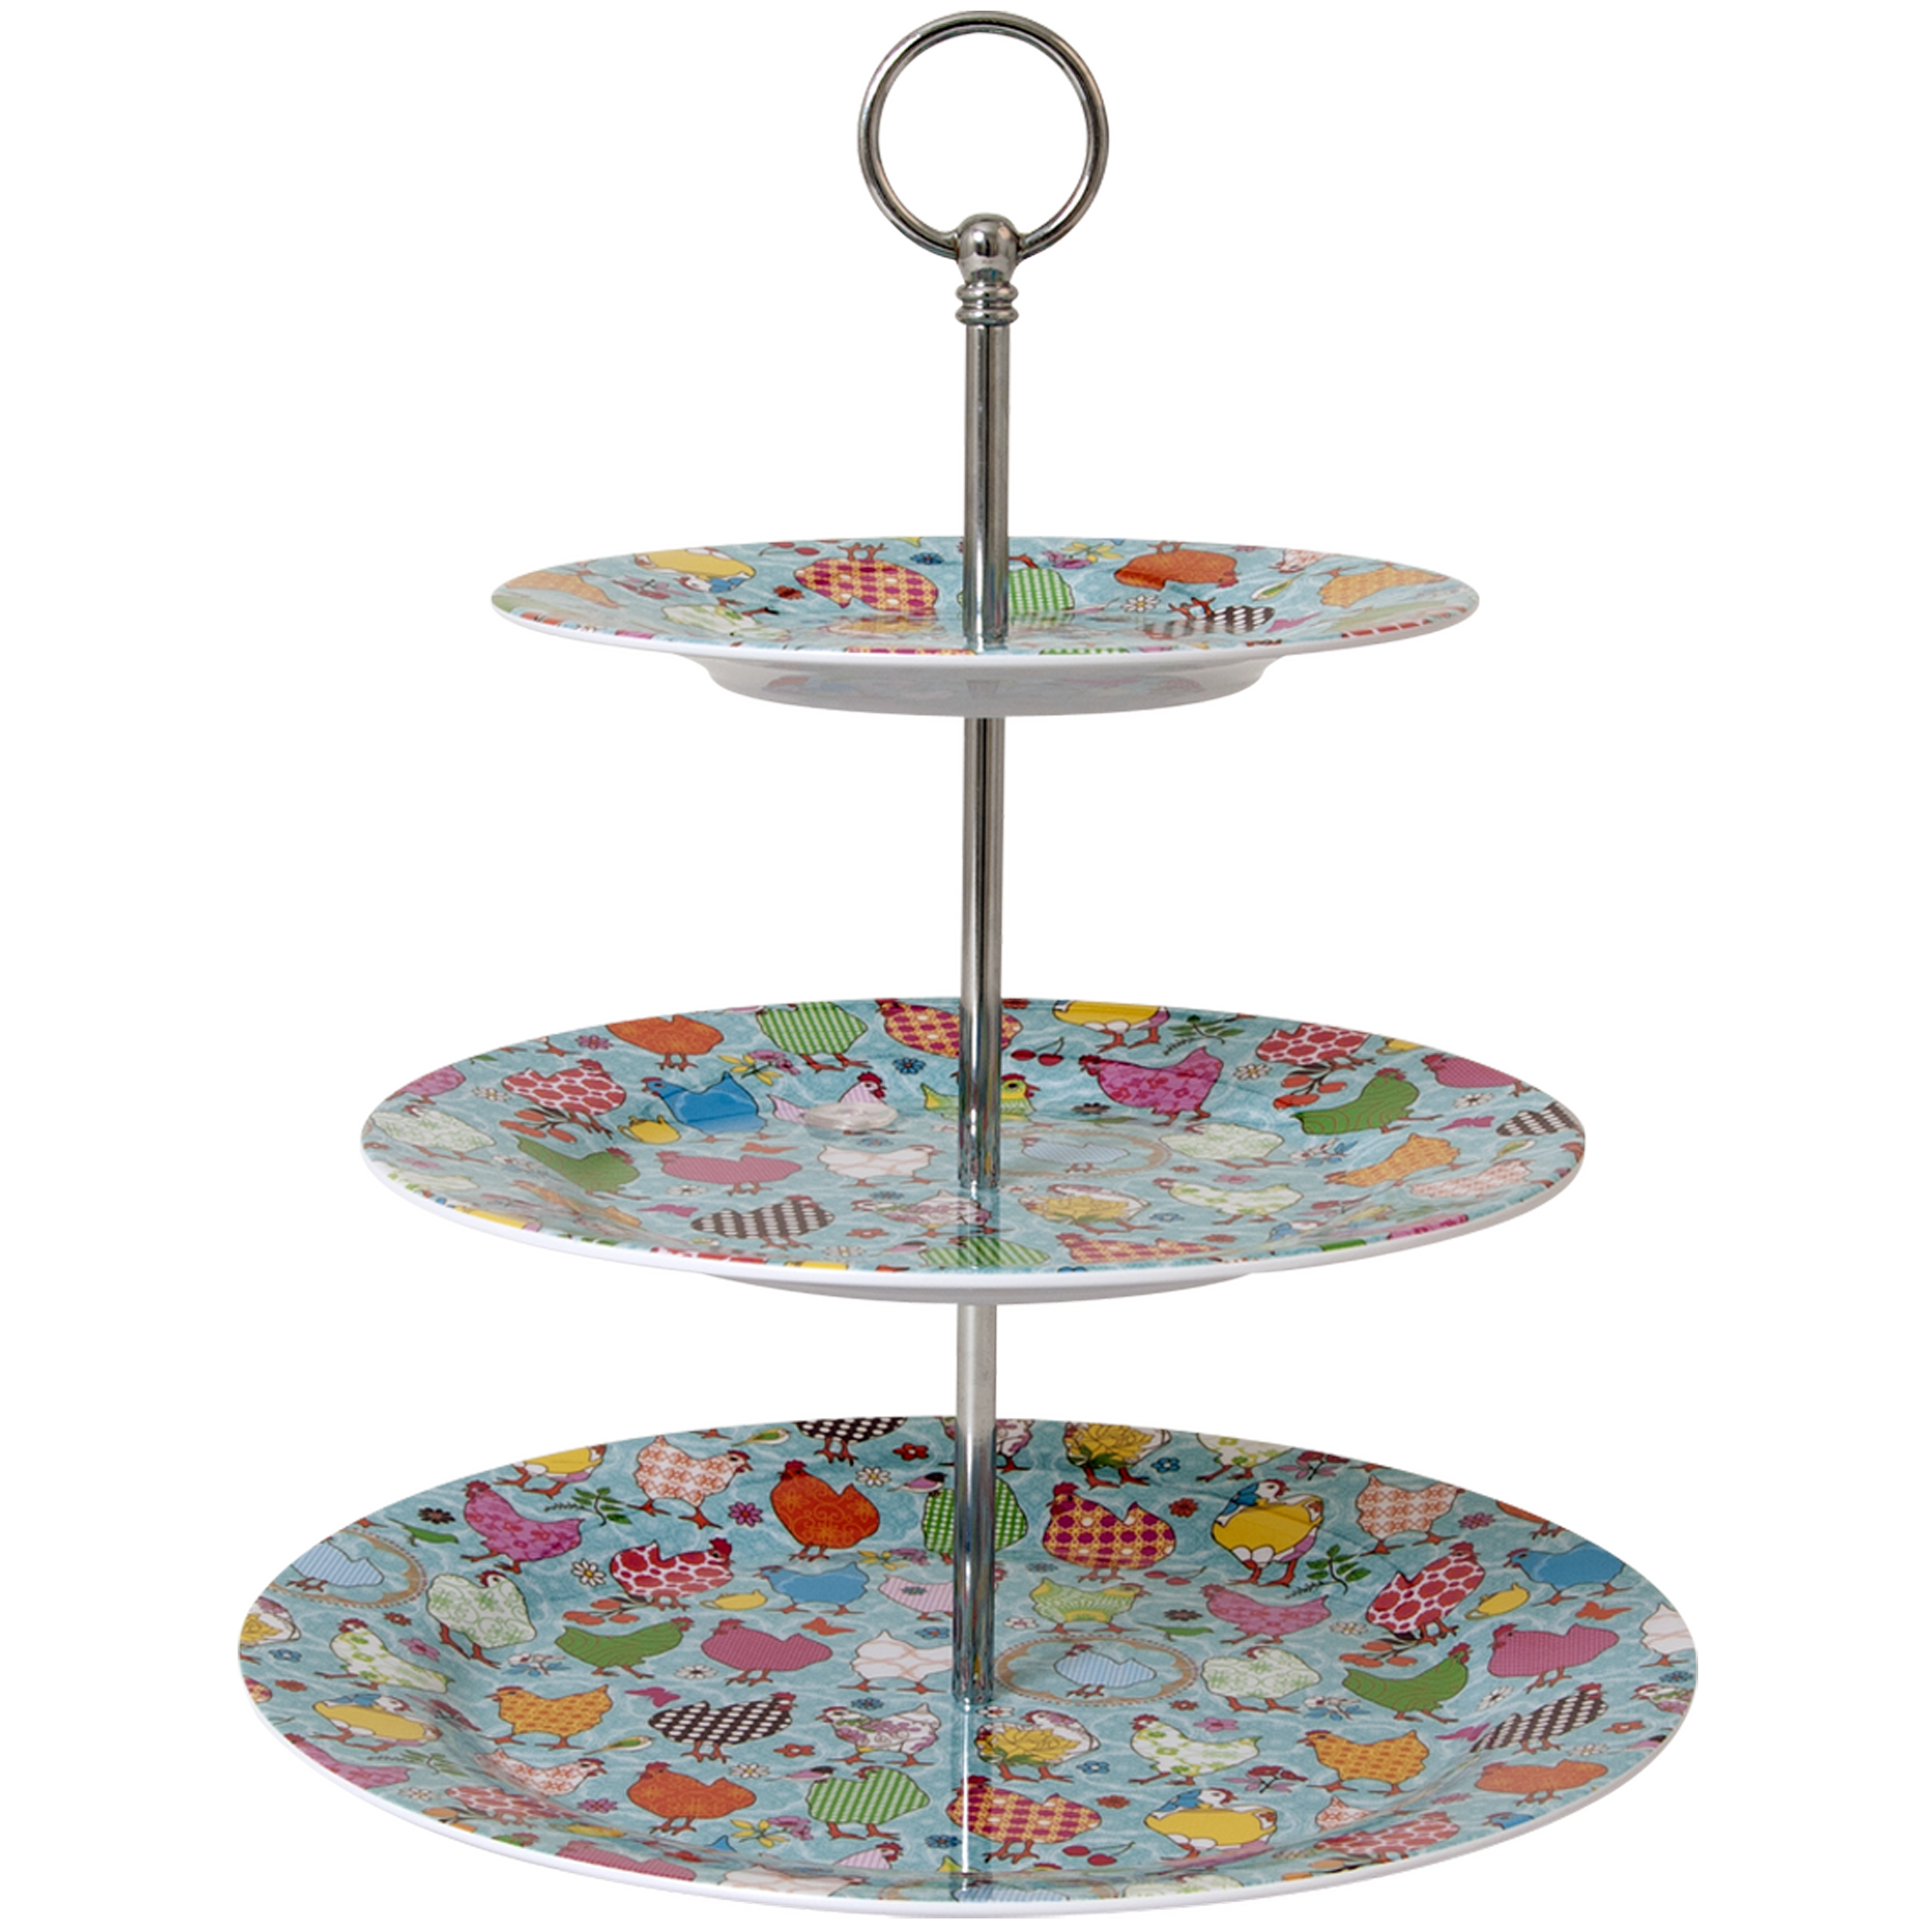 3 Tiered Melamine Cake Stand with Hen Print